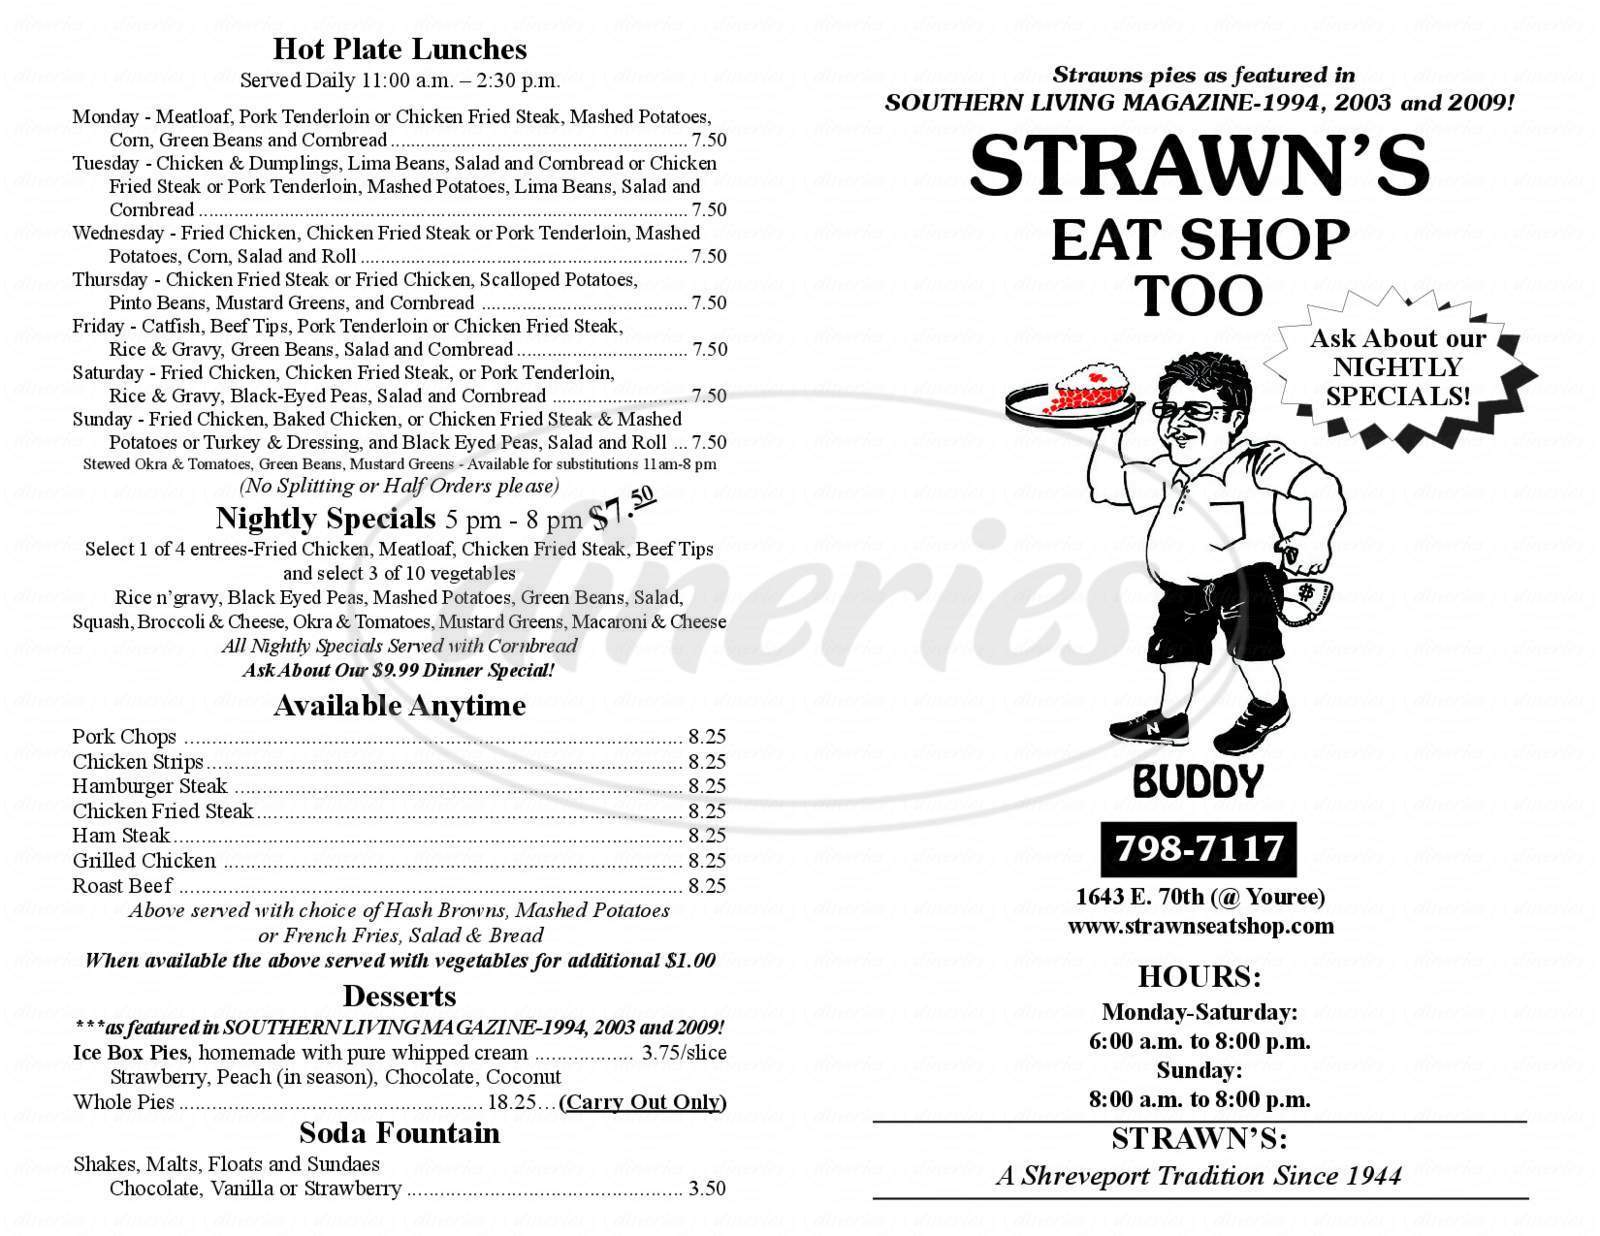 menu for Strawn's Eat Shop Too